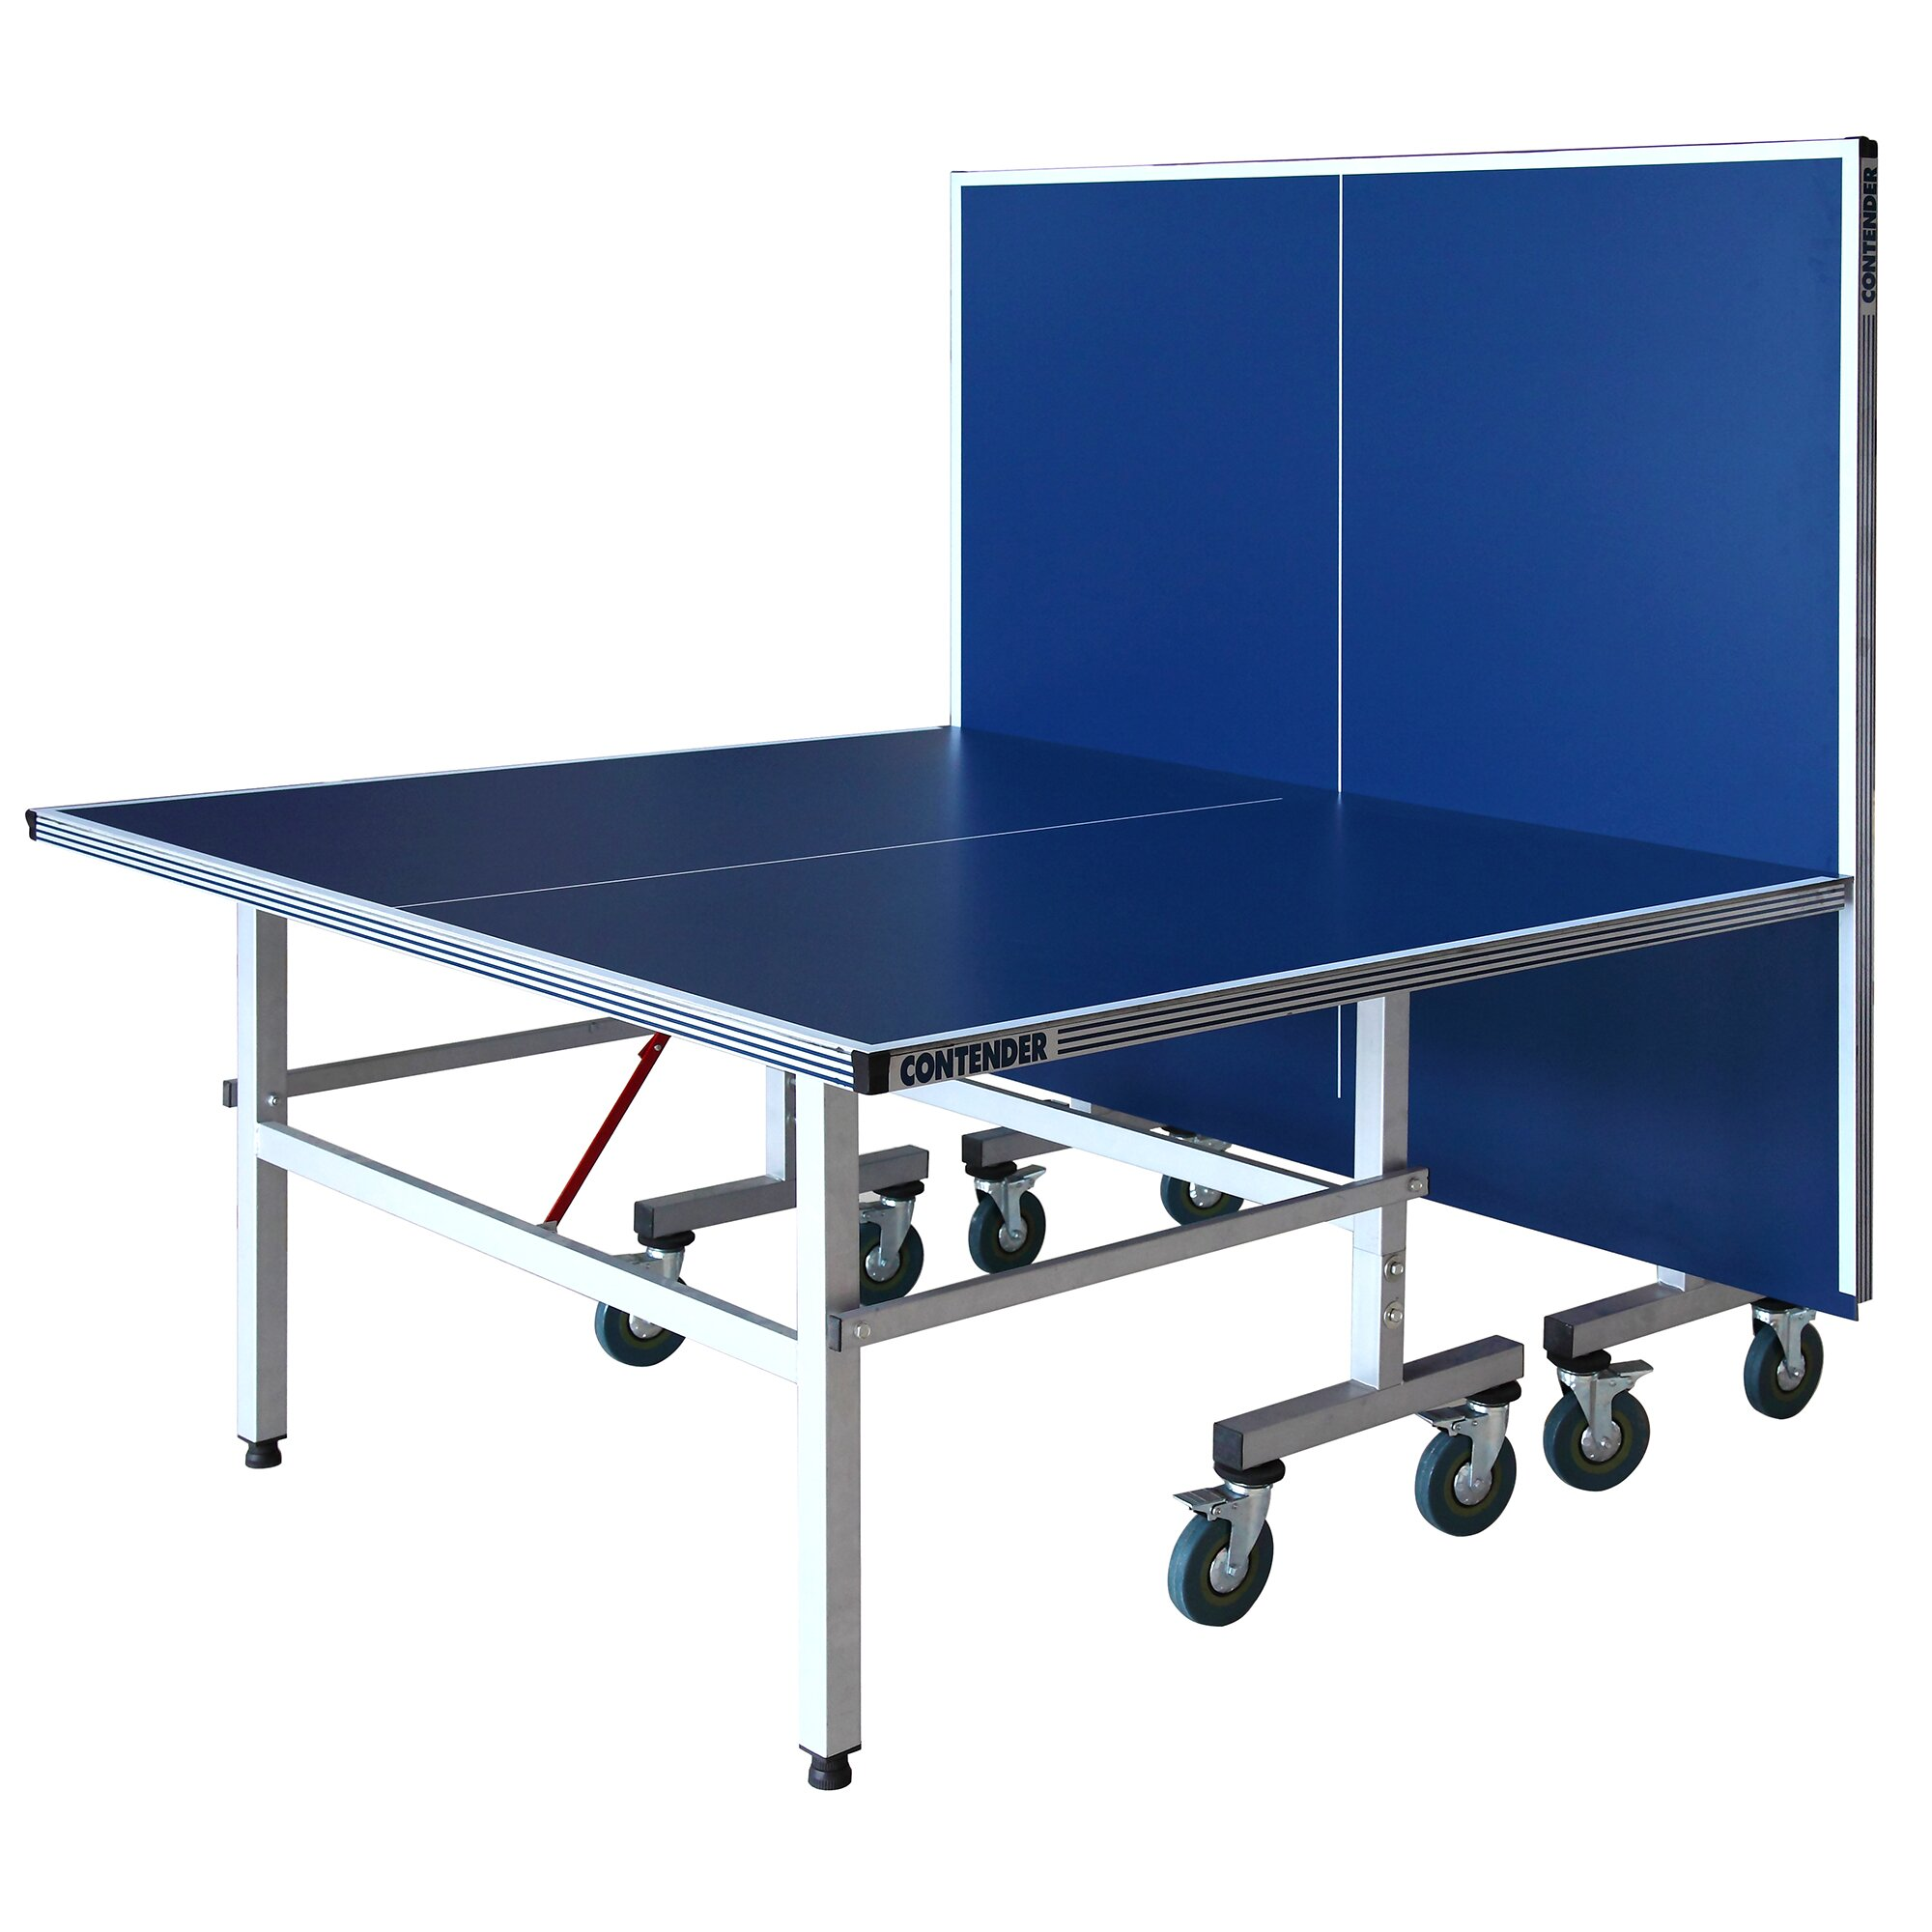 Hathaway games contender outdoor table tennis table reviews - Weatherproof table tennis table ...